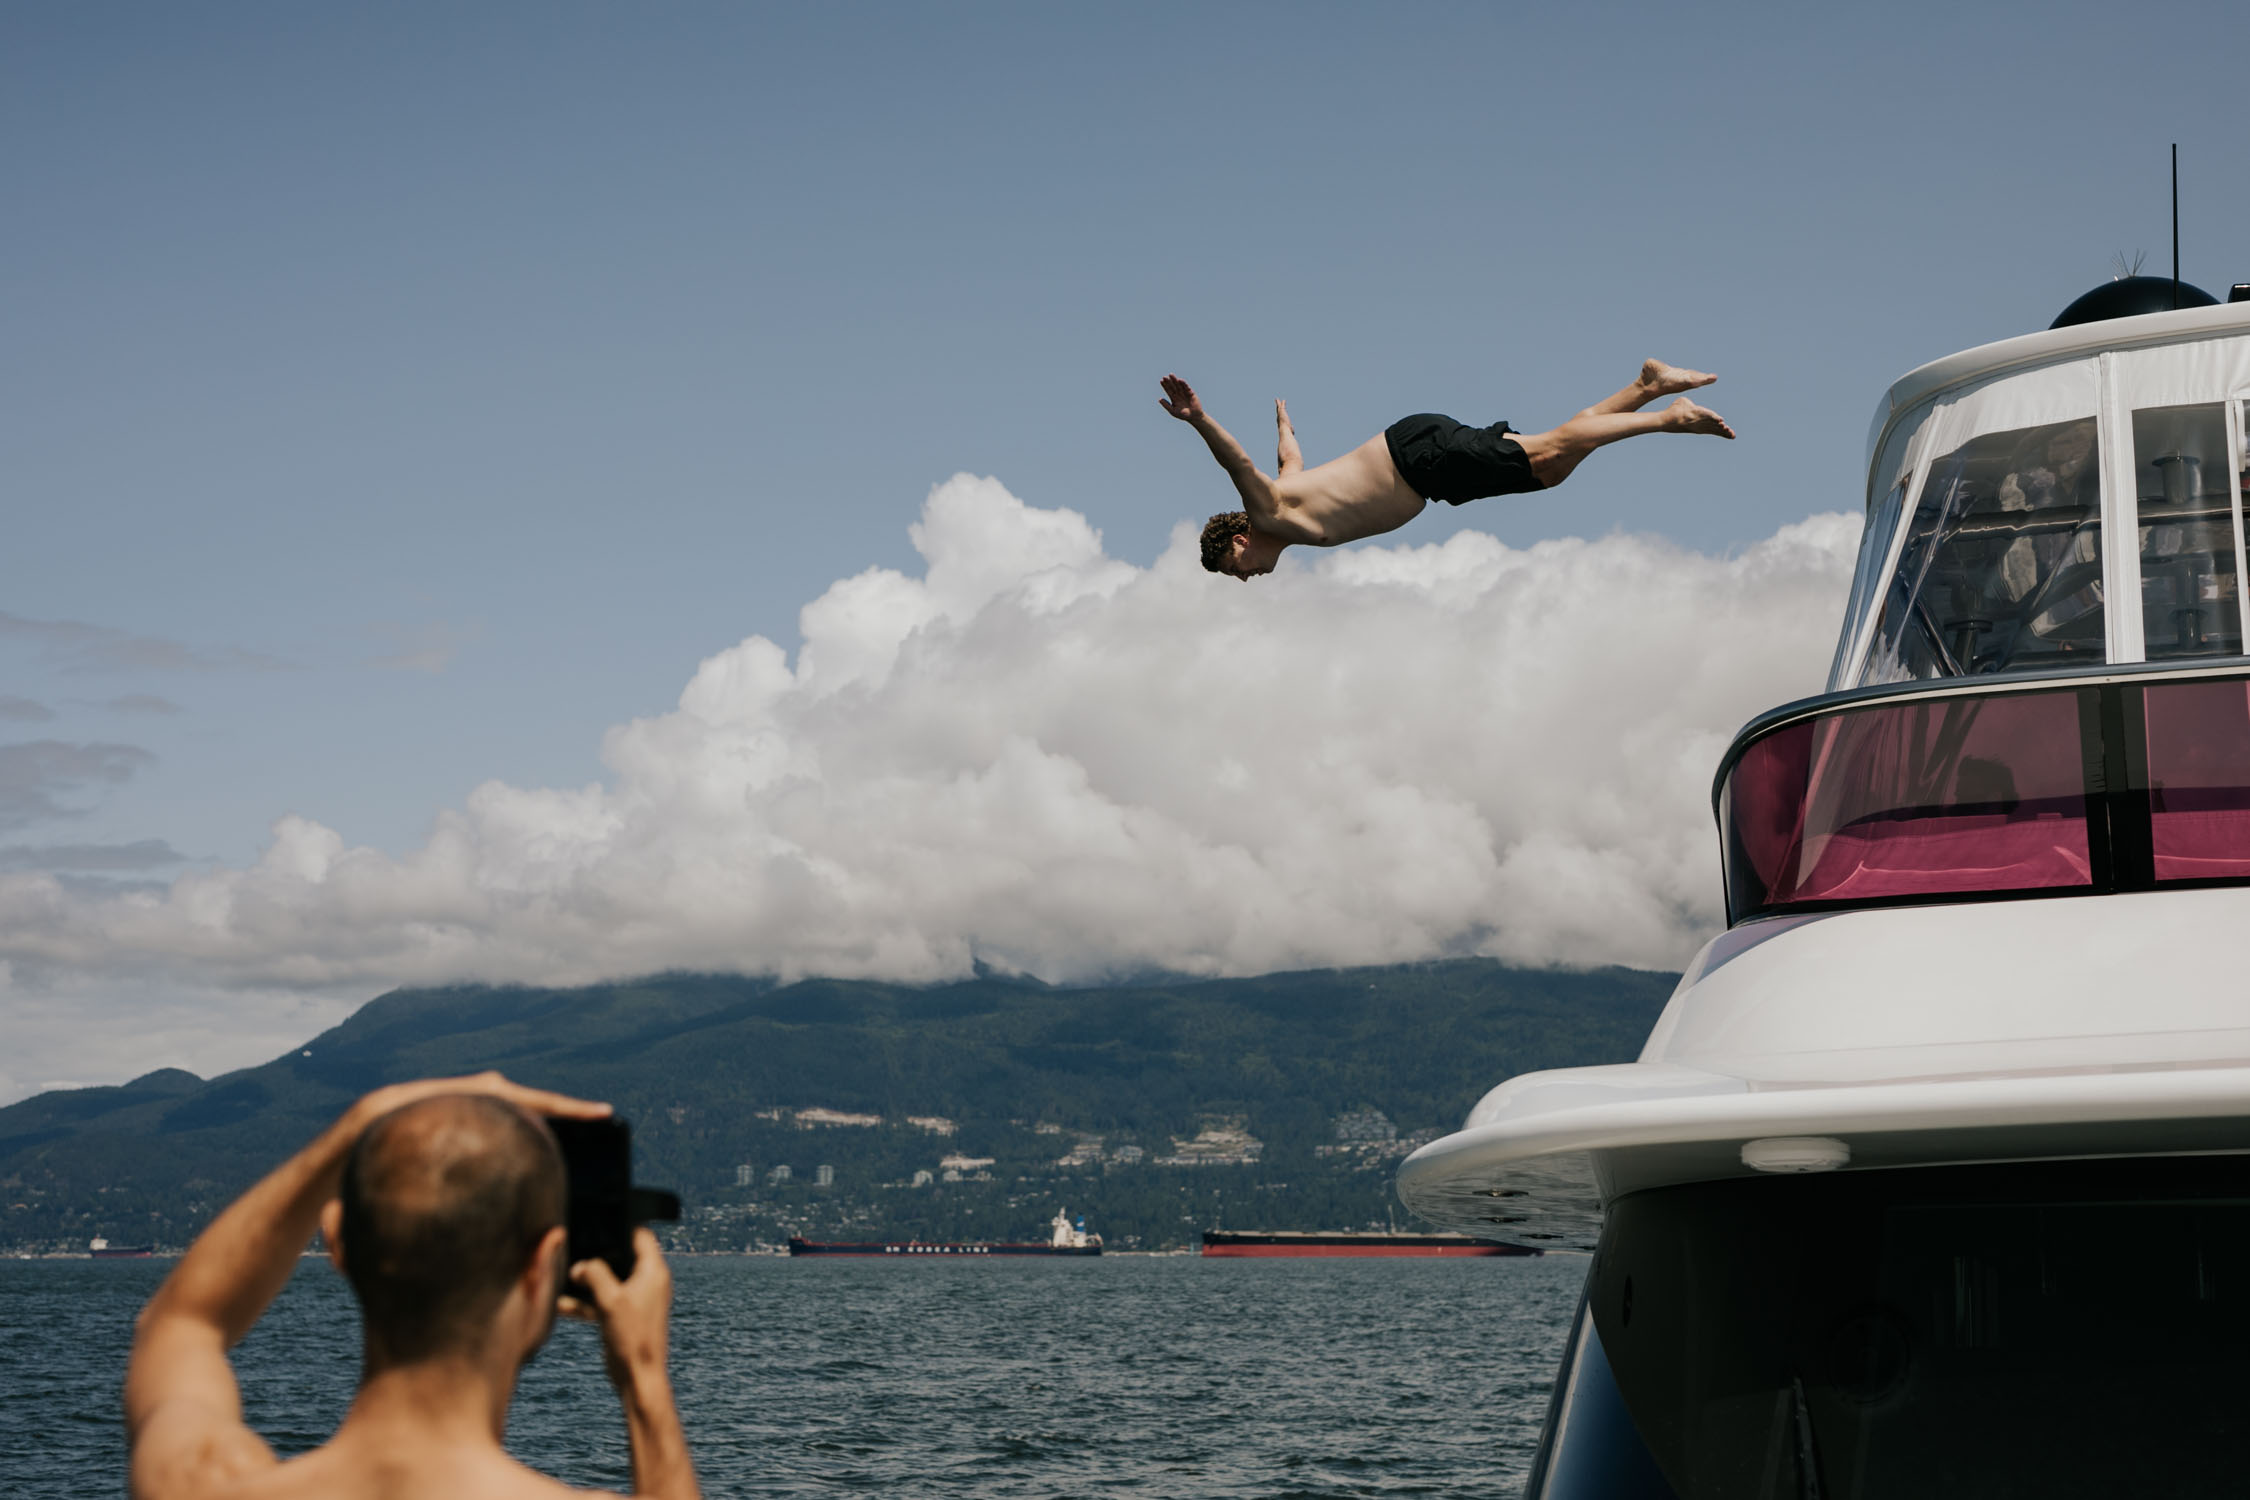 Groomsman takes photo of another groomsman diving off yacht before wedding